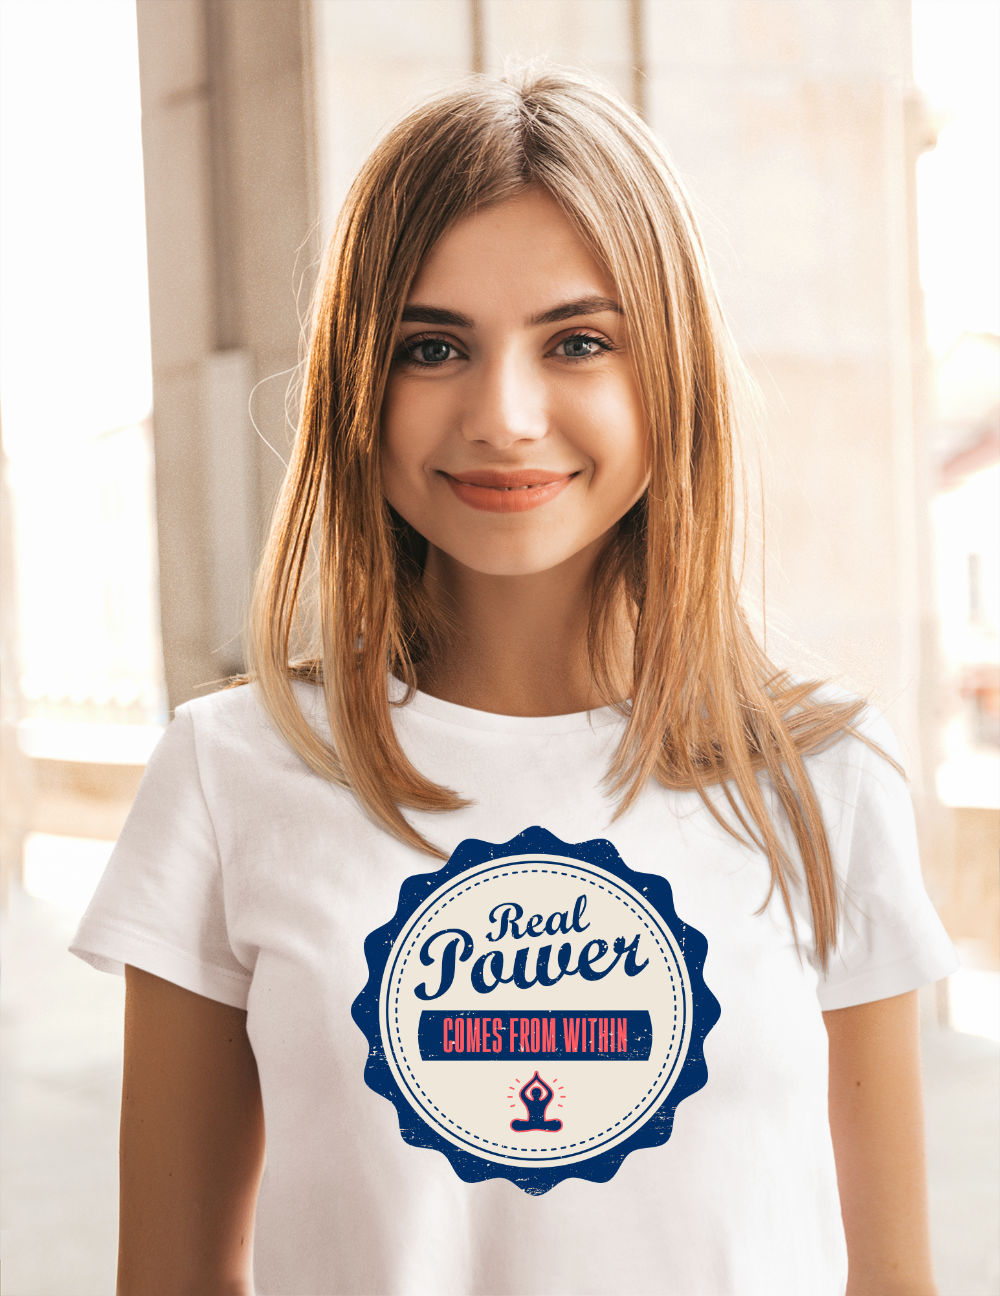 Ausgefallene-T-Shirts-real-power-comes-from-within